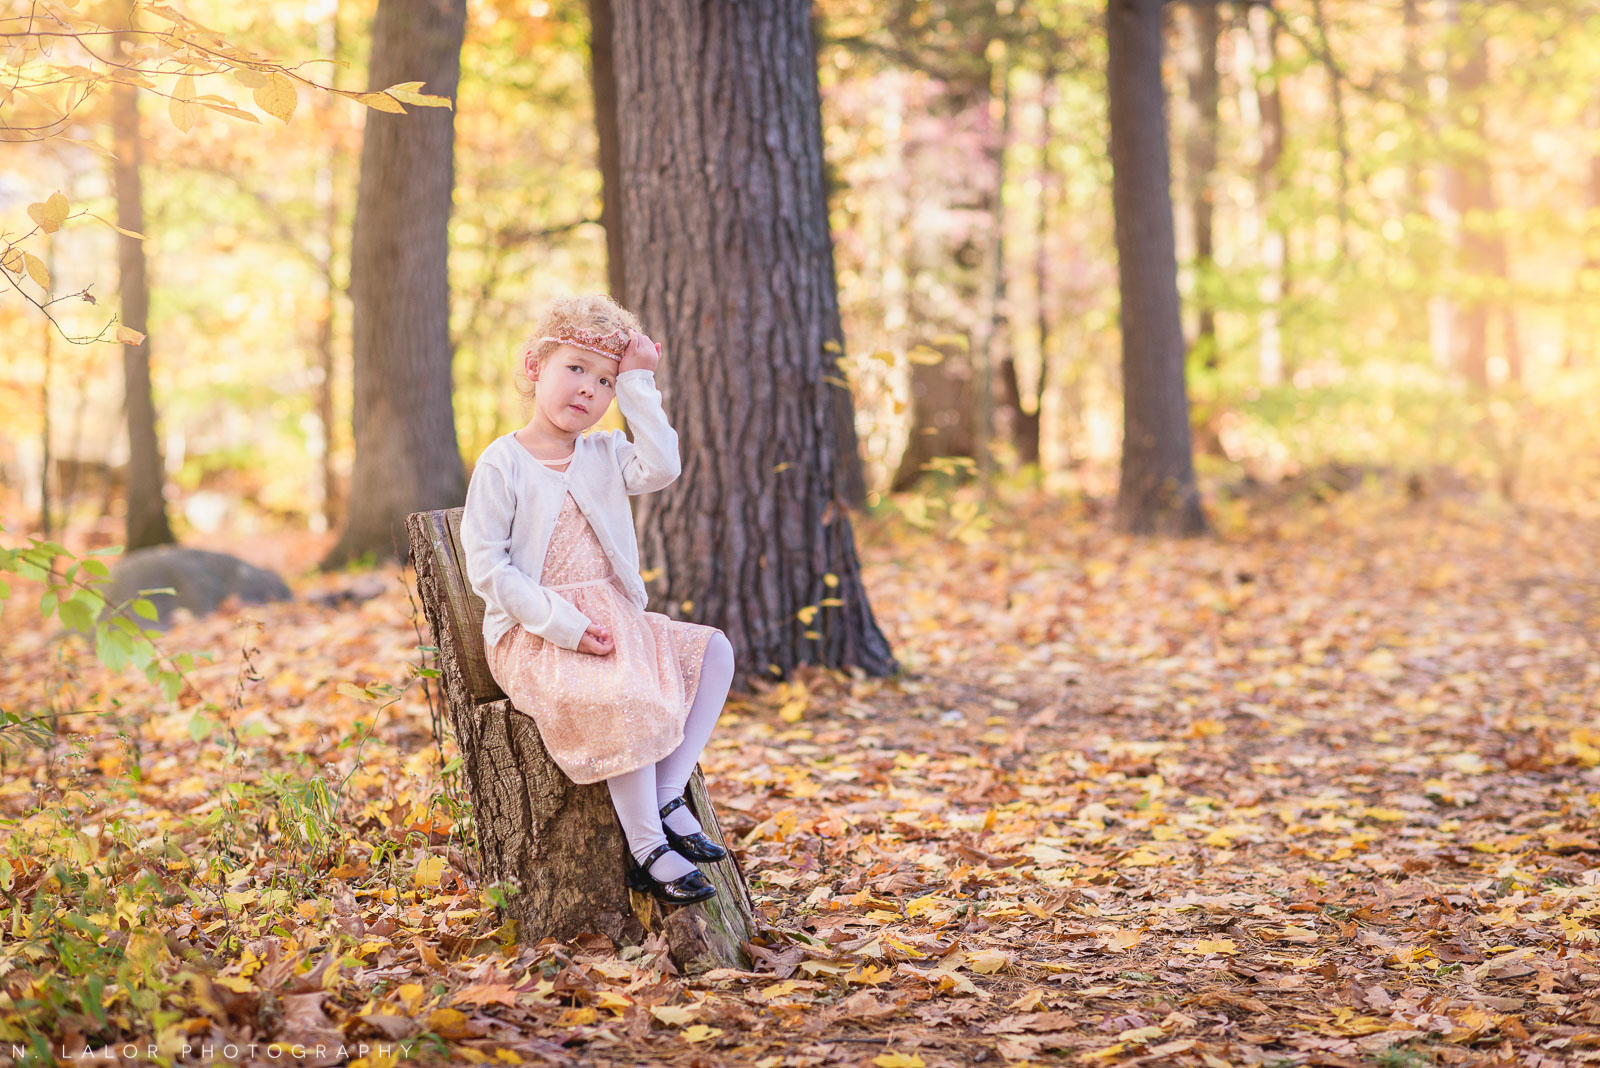 4-year old girl adjusting her crown headband in the woods. Portrait by N. Lalor Photography.